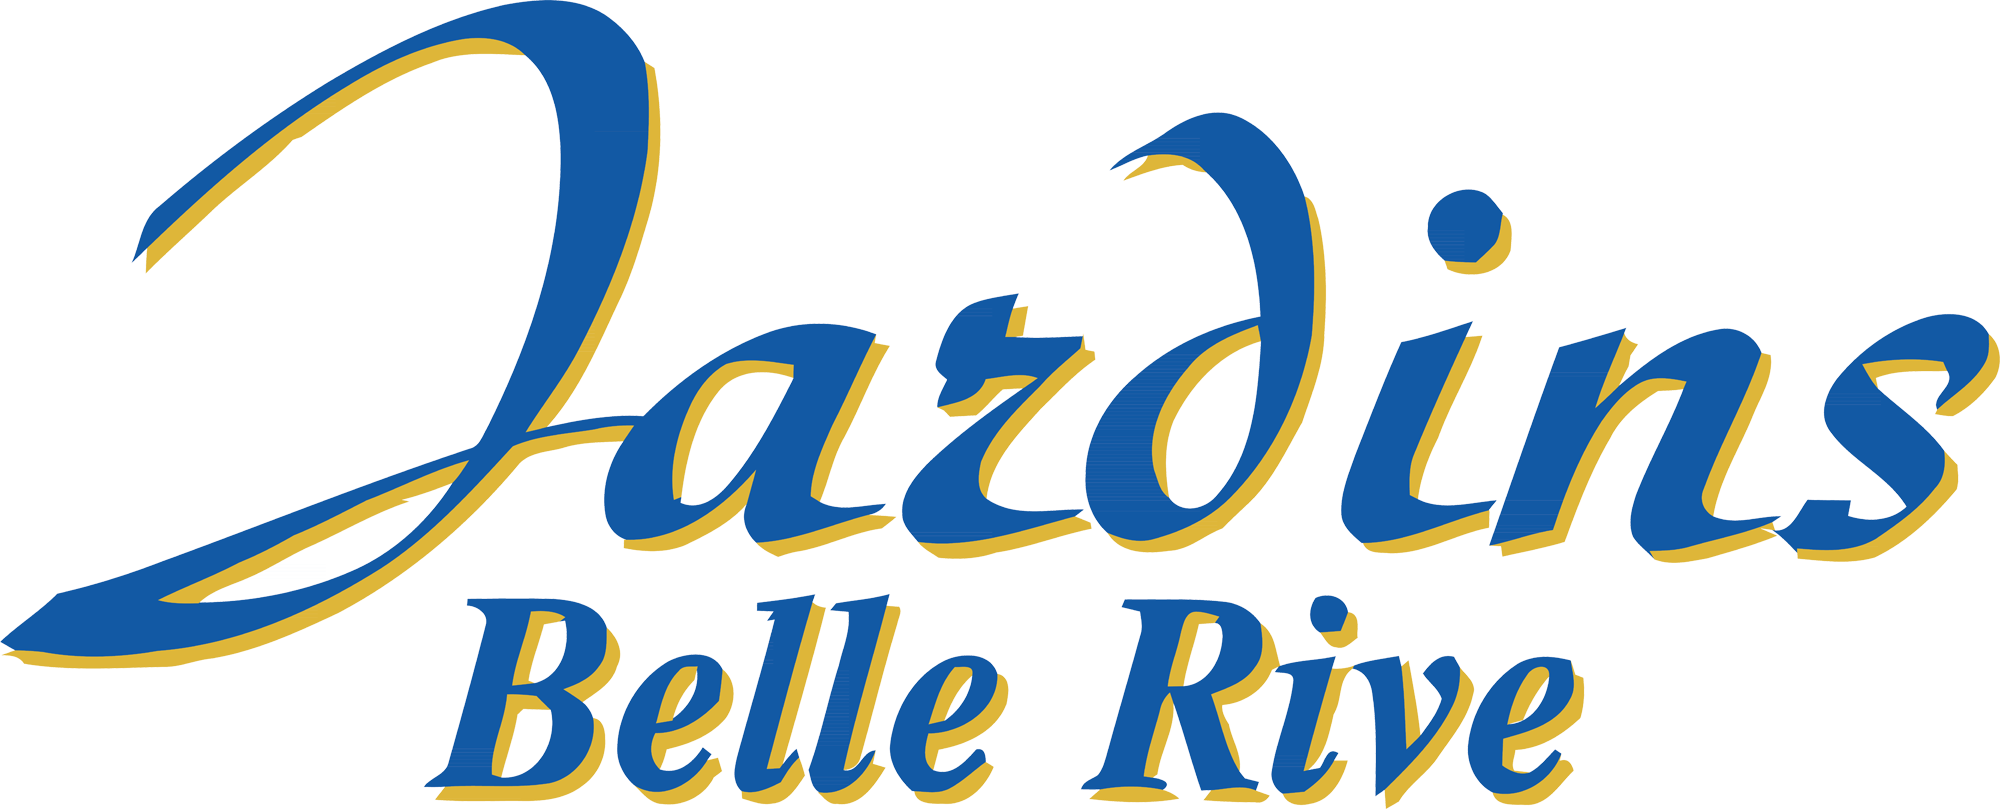 belle rive singles The scottsdale belle rive is located at: 8550 east mcdowell road scottsdale, arizona 85257 convenient south scottsdale location easy access to loops 101 and 202.